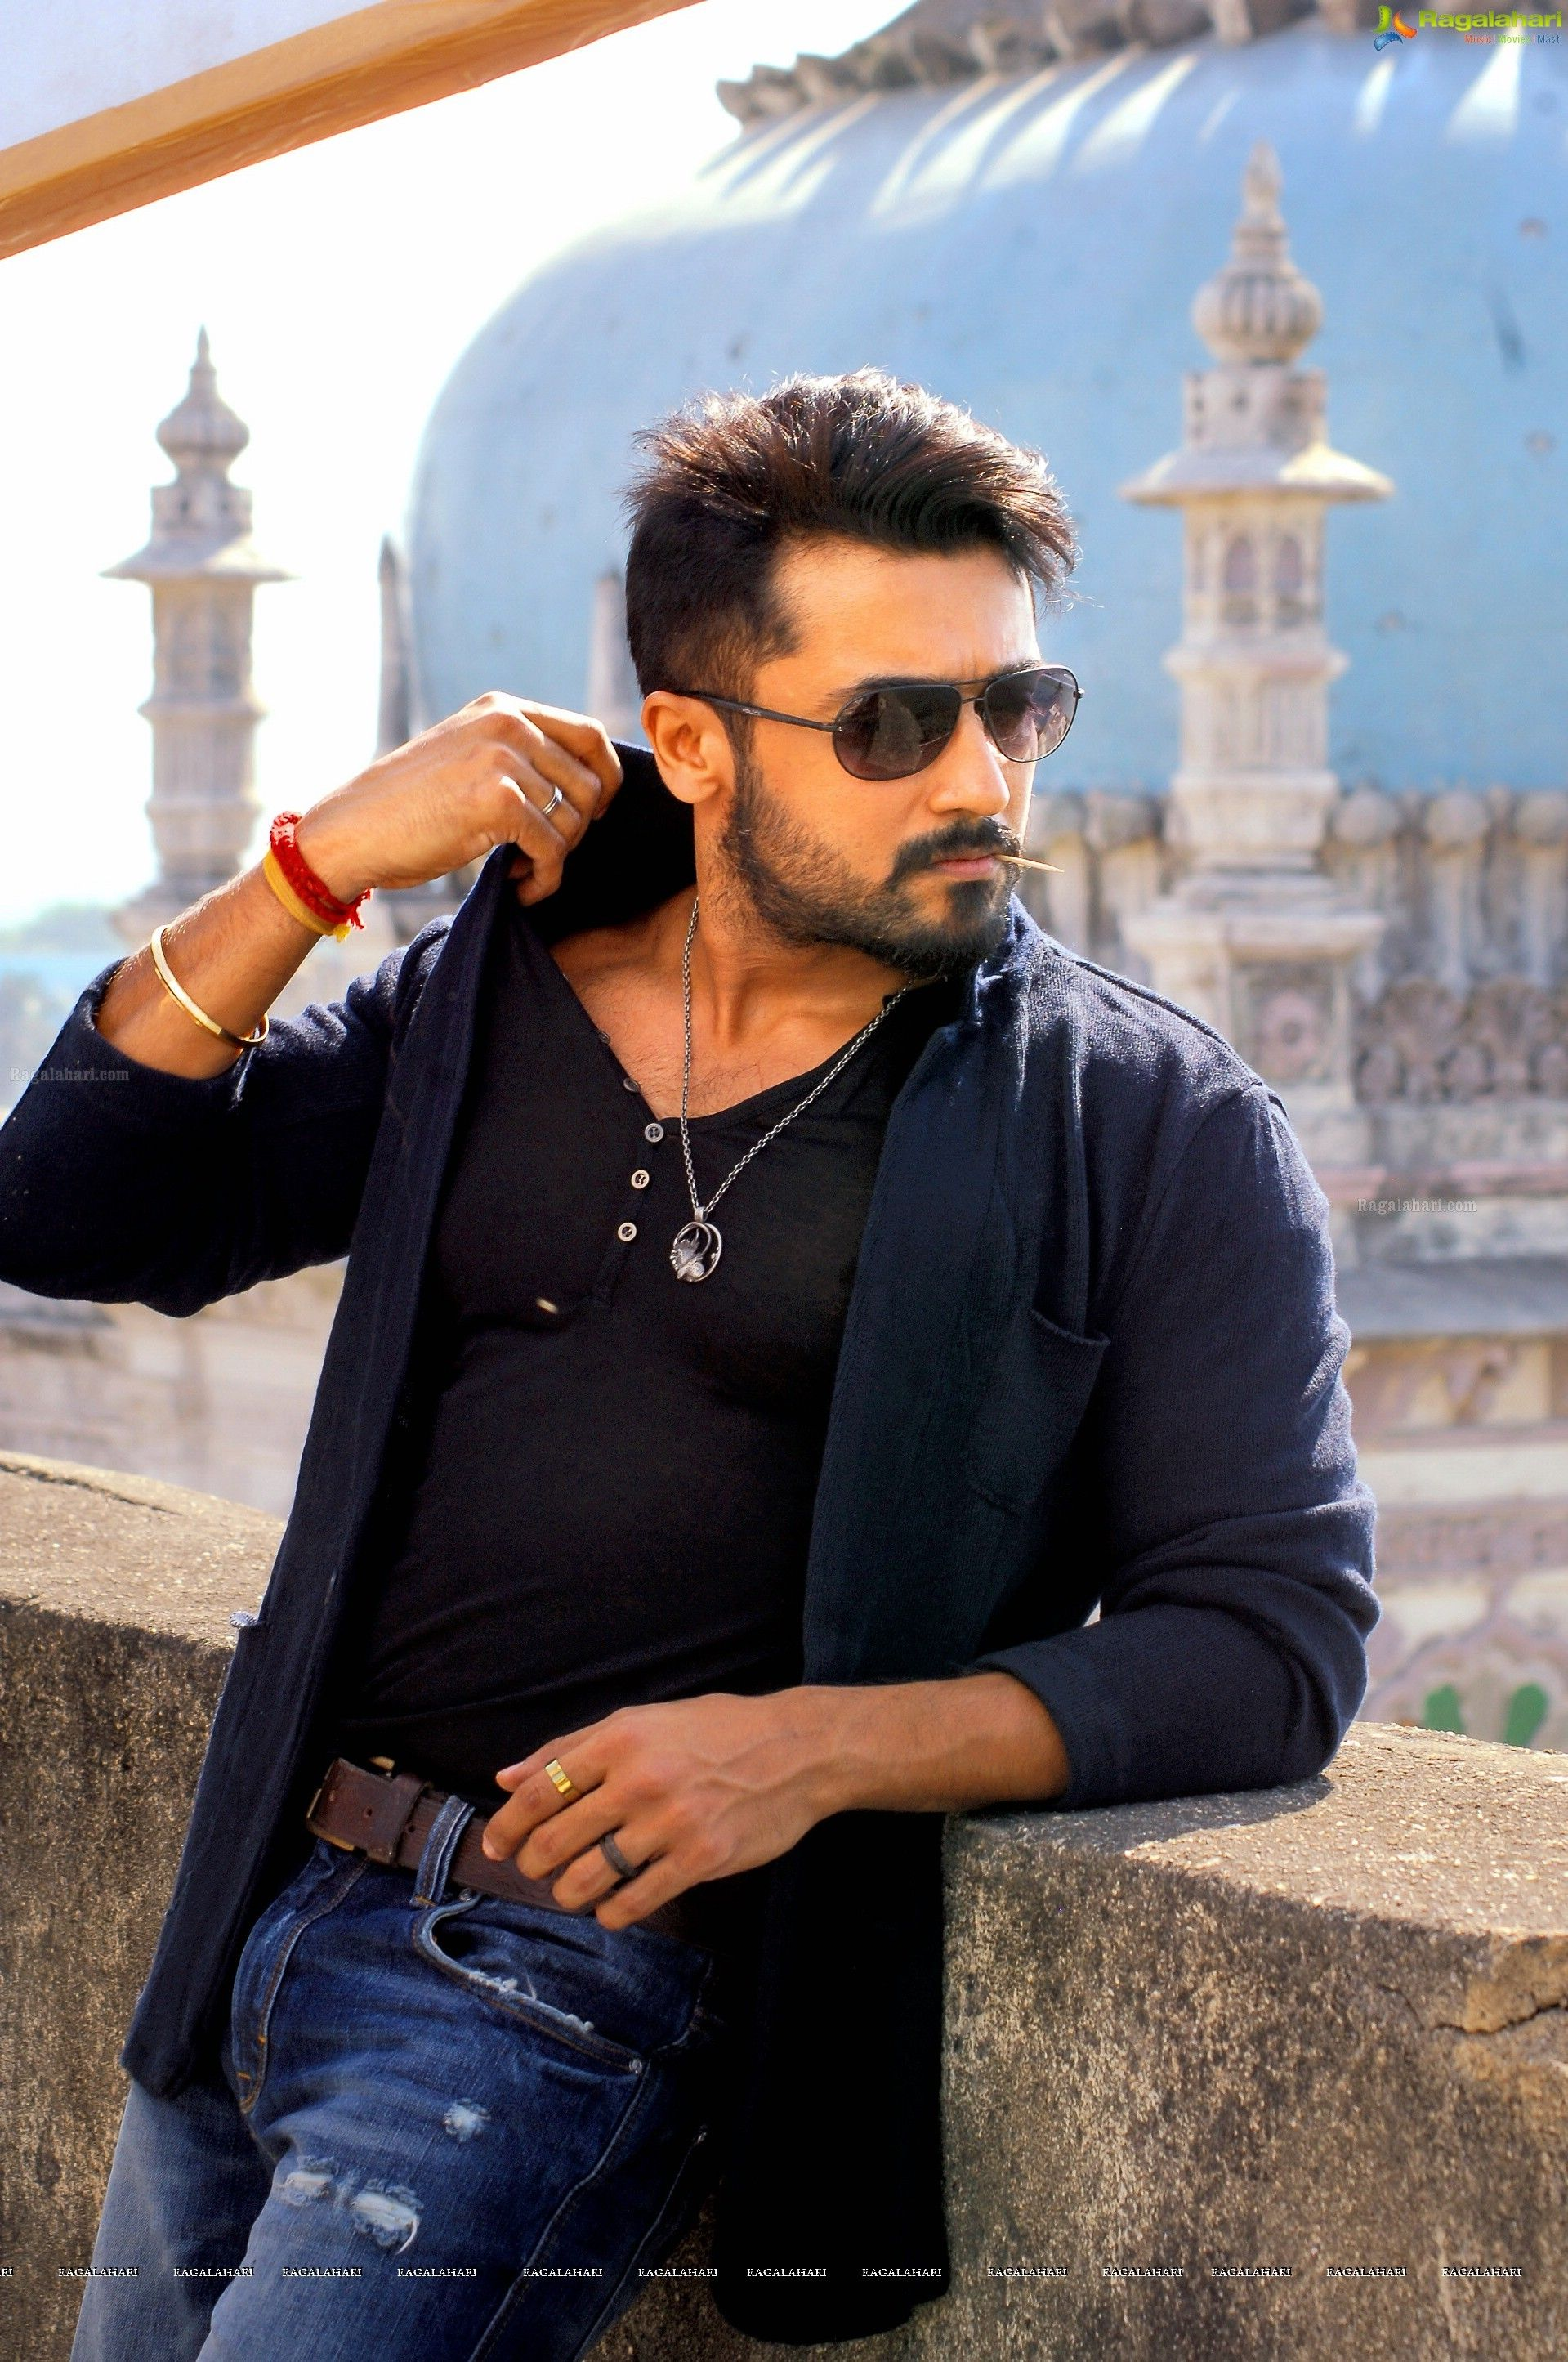 Surya Hd Wallpaper 2018 76 Images Photography Poses For Men Surya Actor Movie Photo